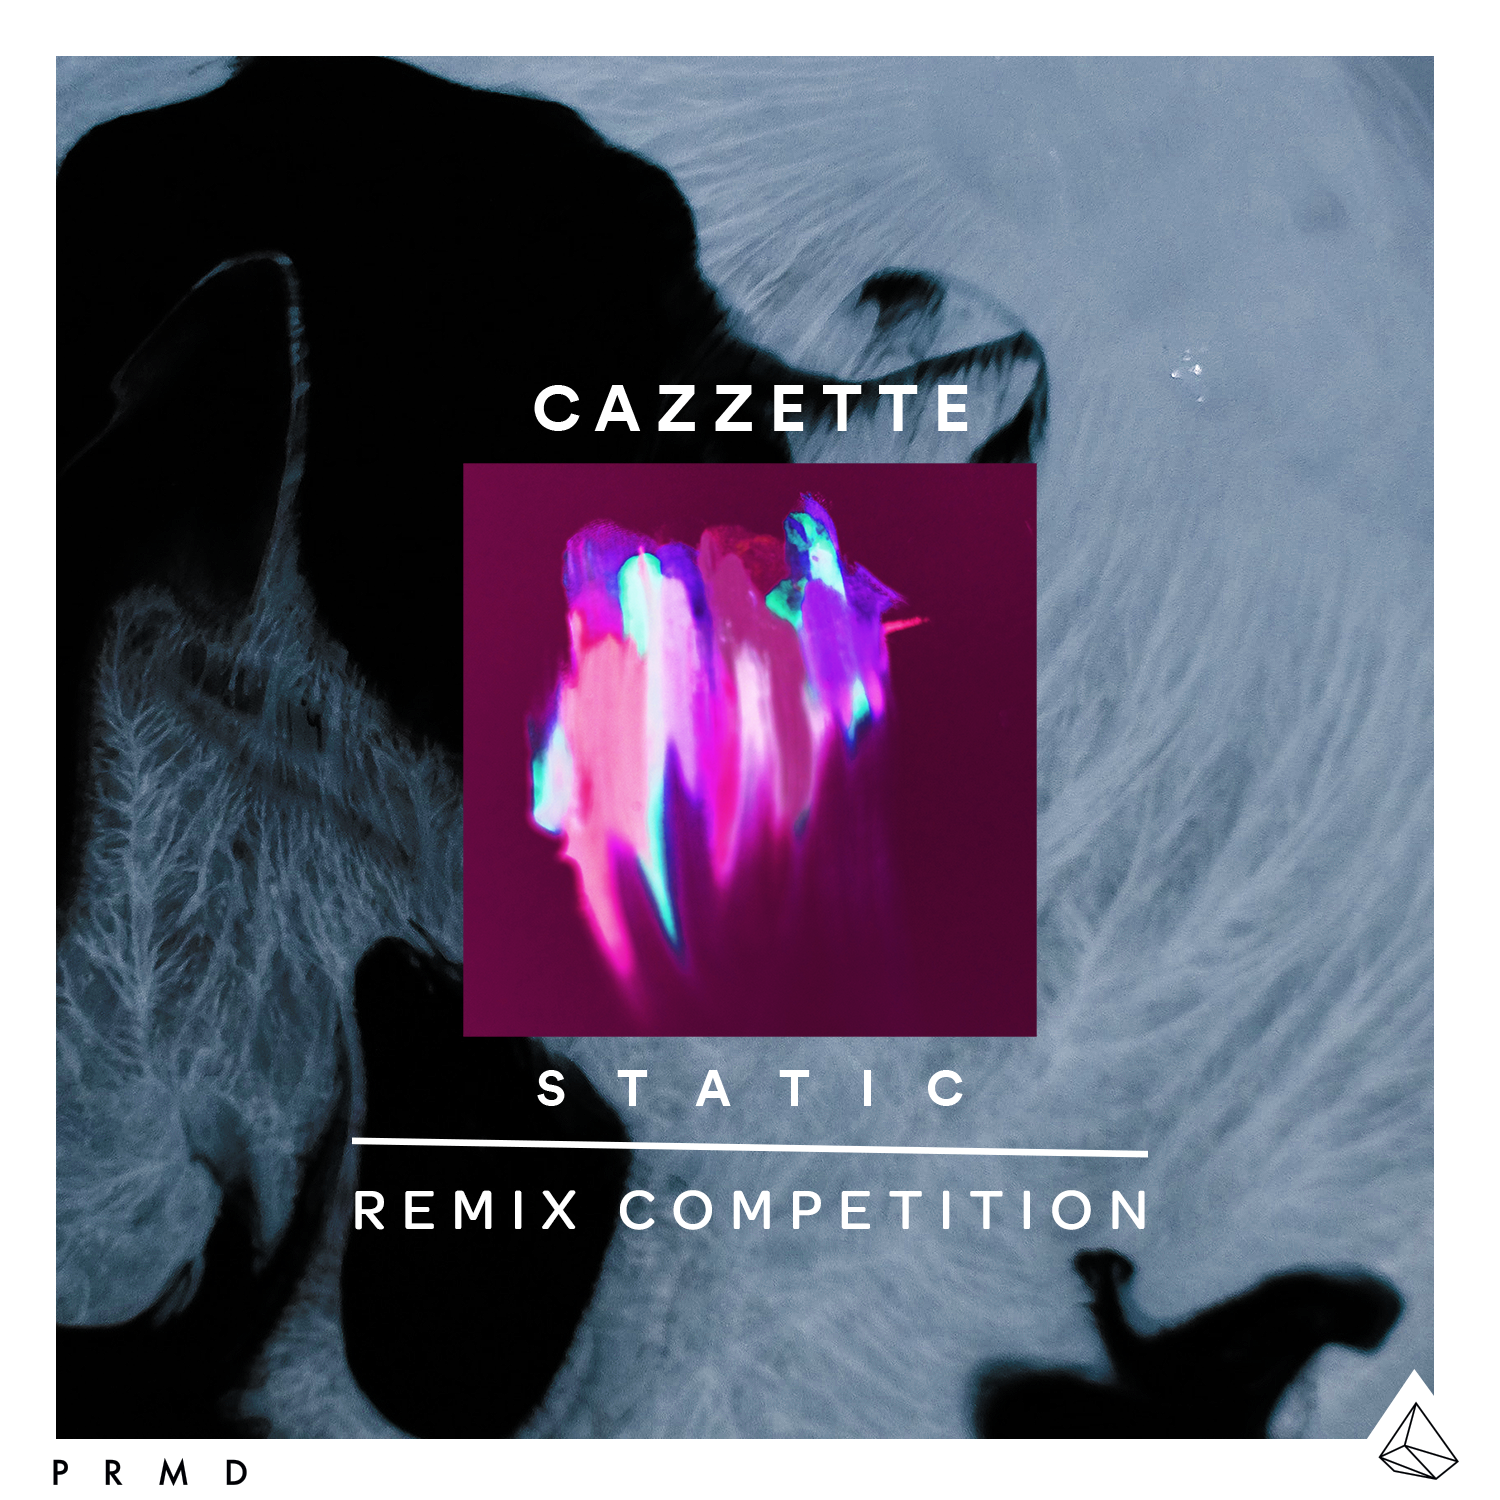 Grab the acapella here and submit your very own remix of